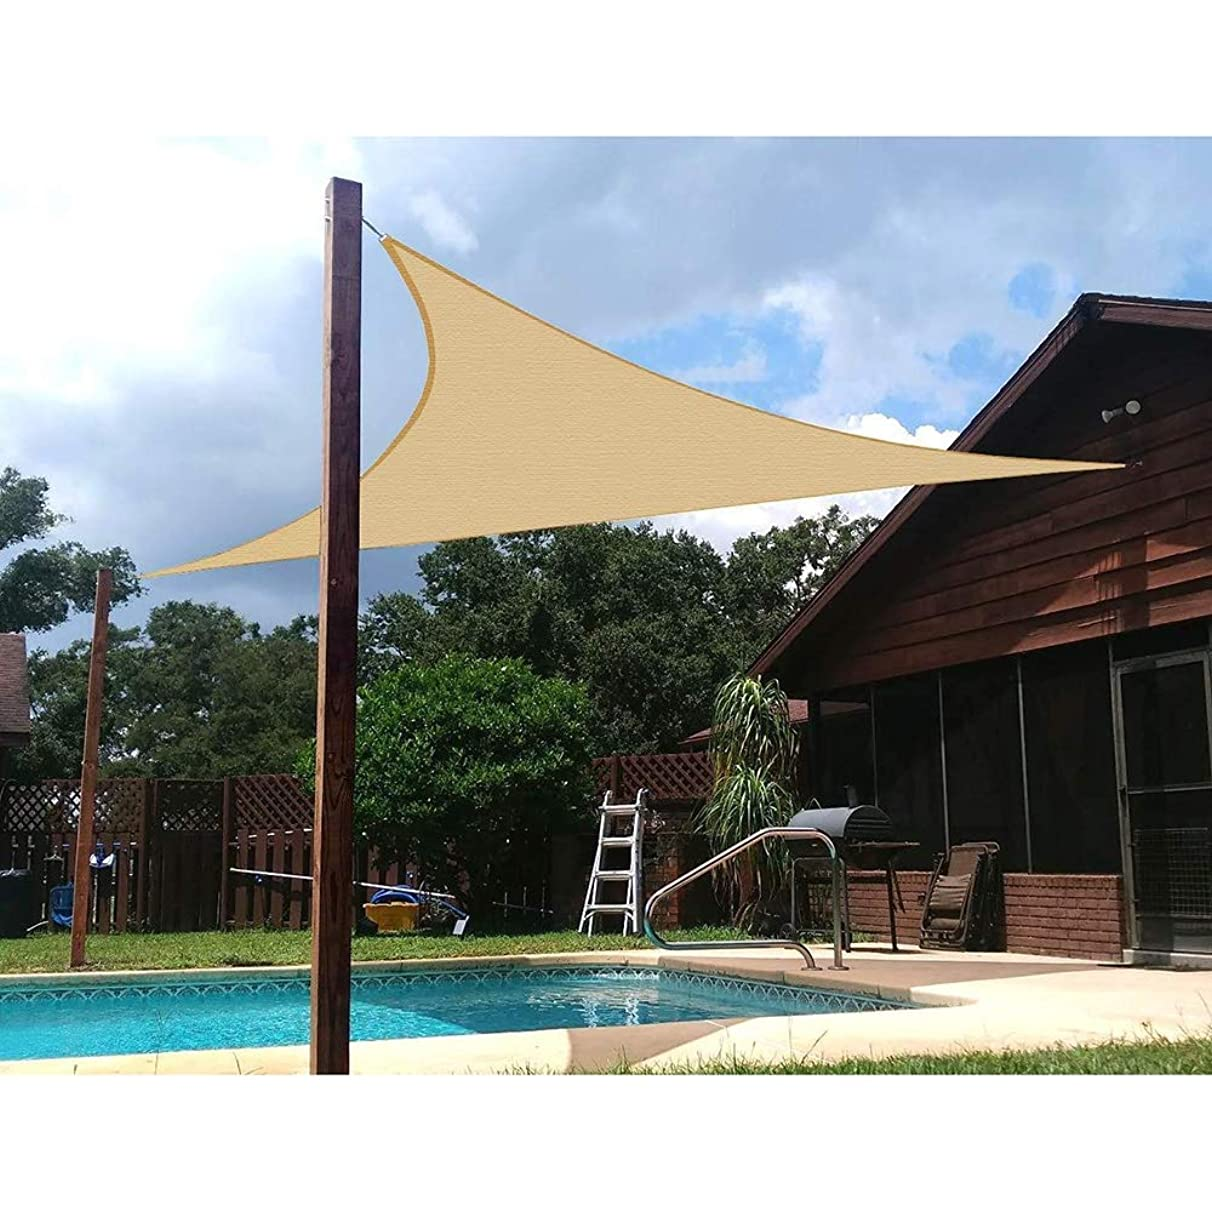 Awnings 4.5'x 4.5'x4.5' Garden Shade Sail Waterproof and Mildew 95% Uv Protection Triangle for Garden Pool Terrace Custom Size